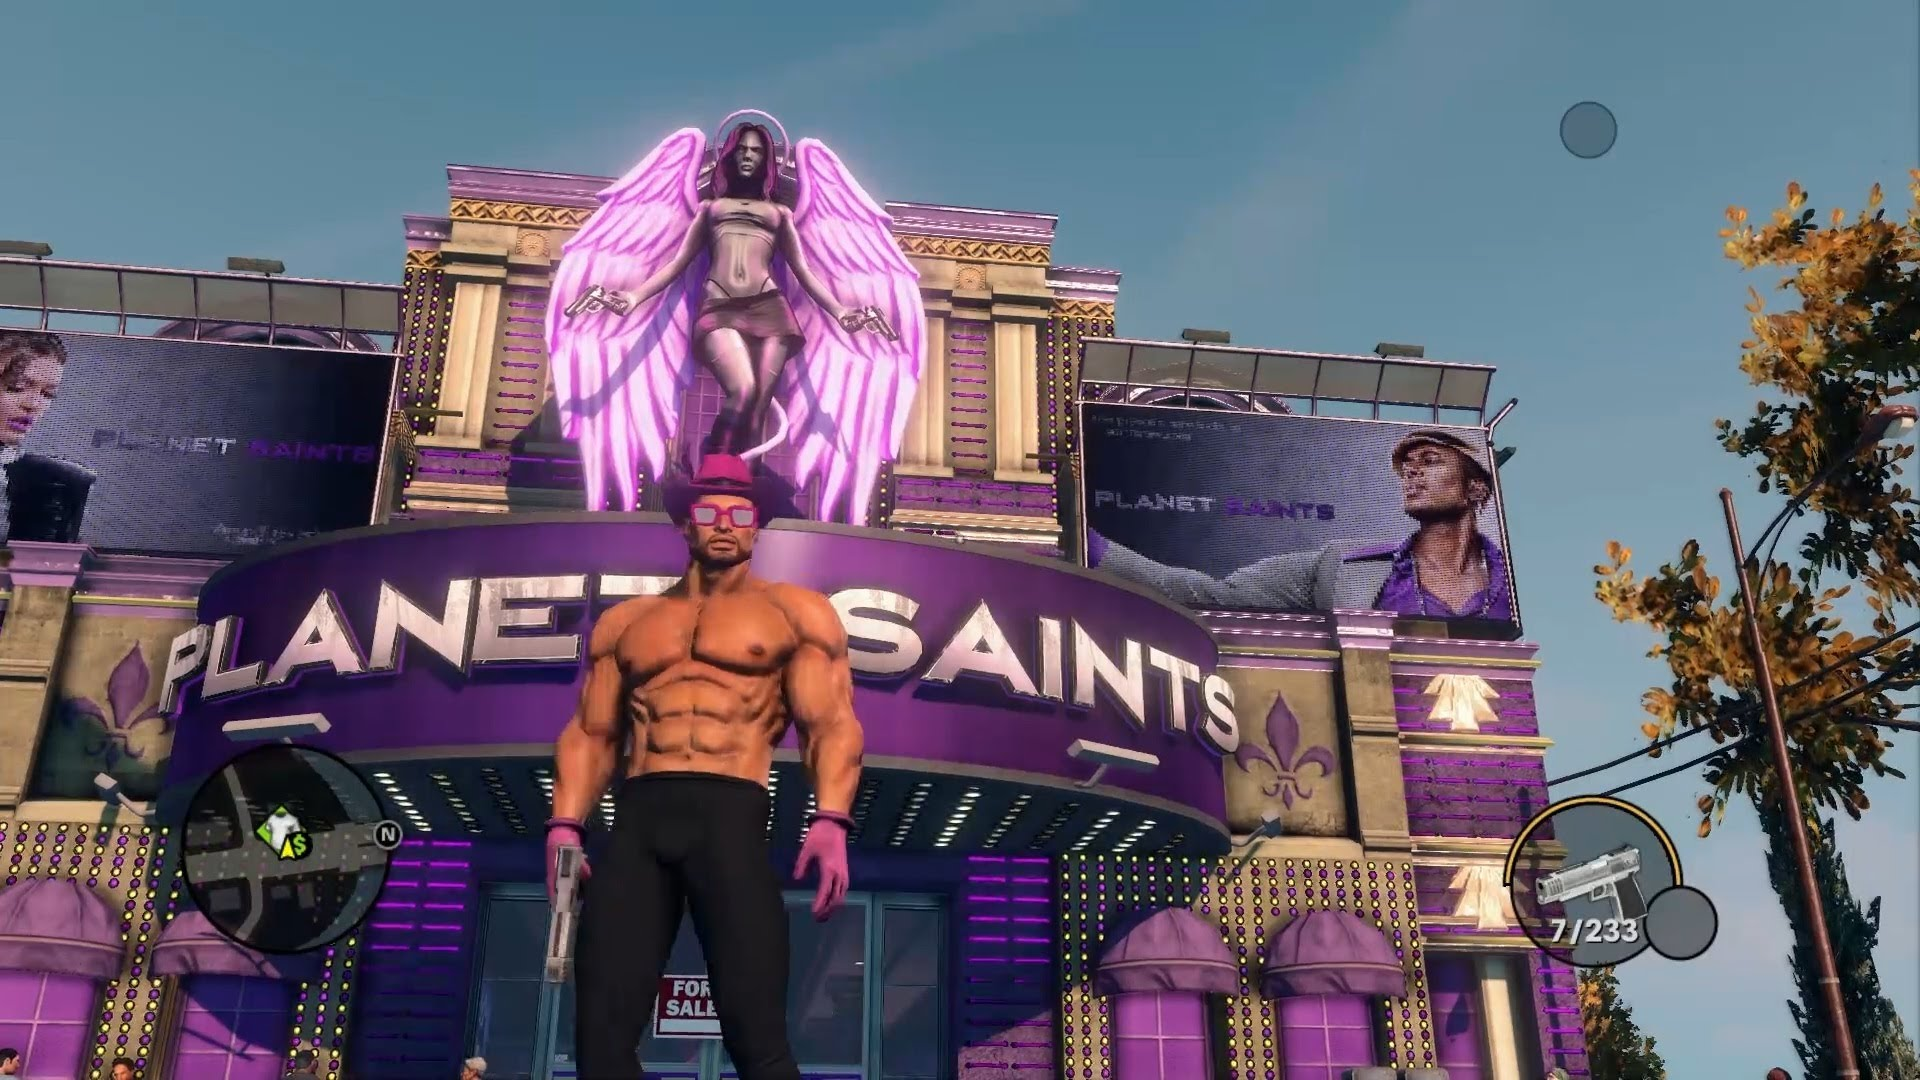 Saints row 4 nudity no pixelated mod sexy image